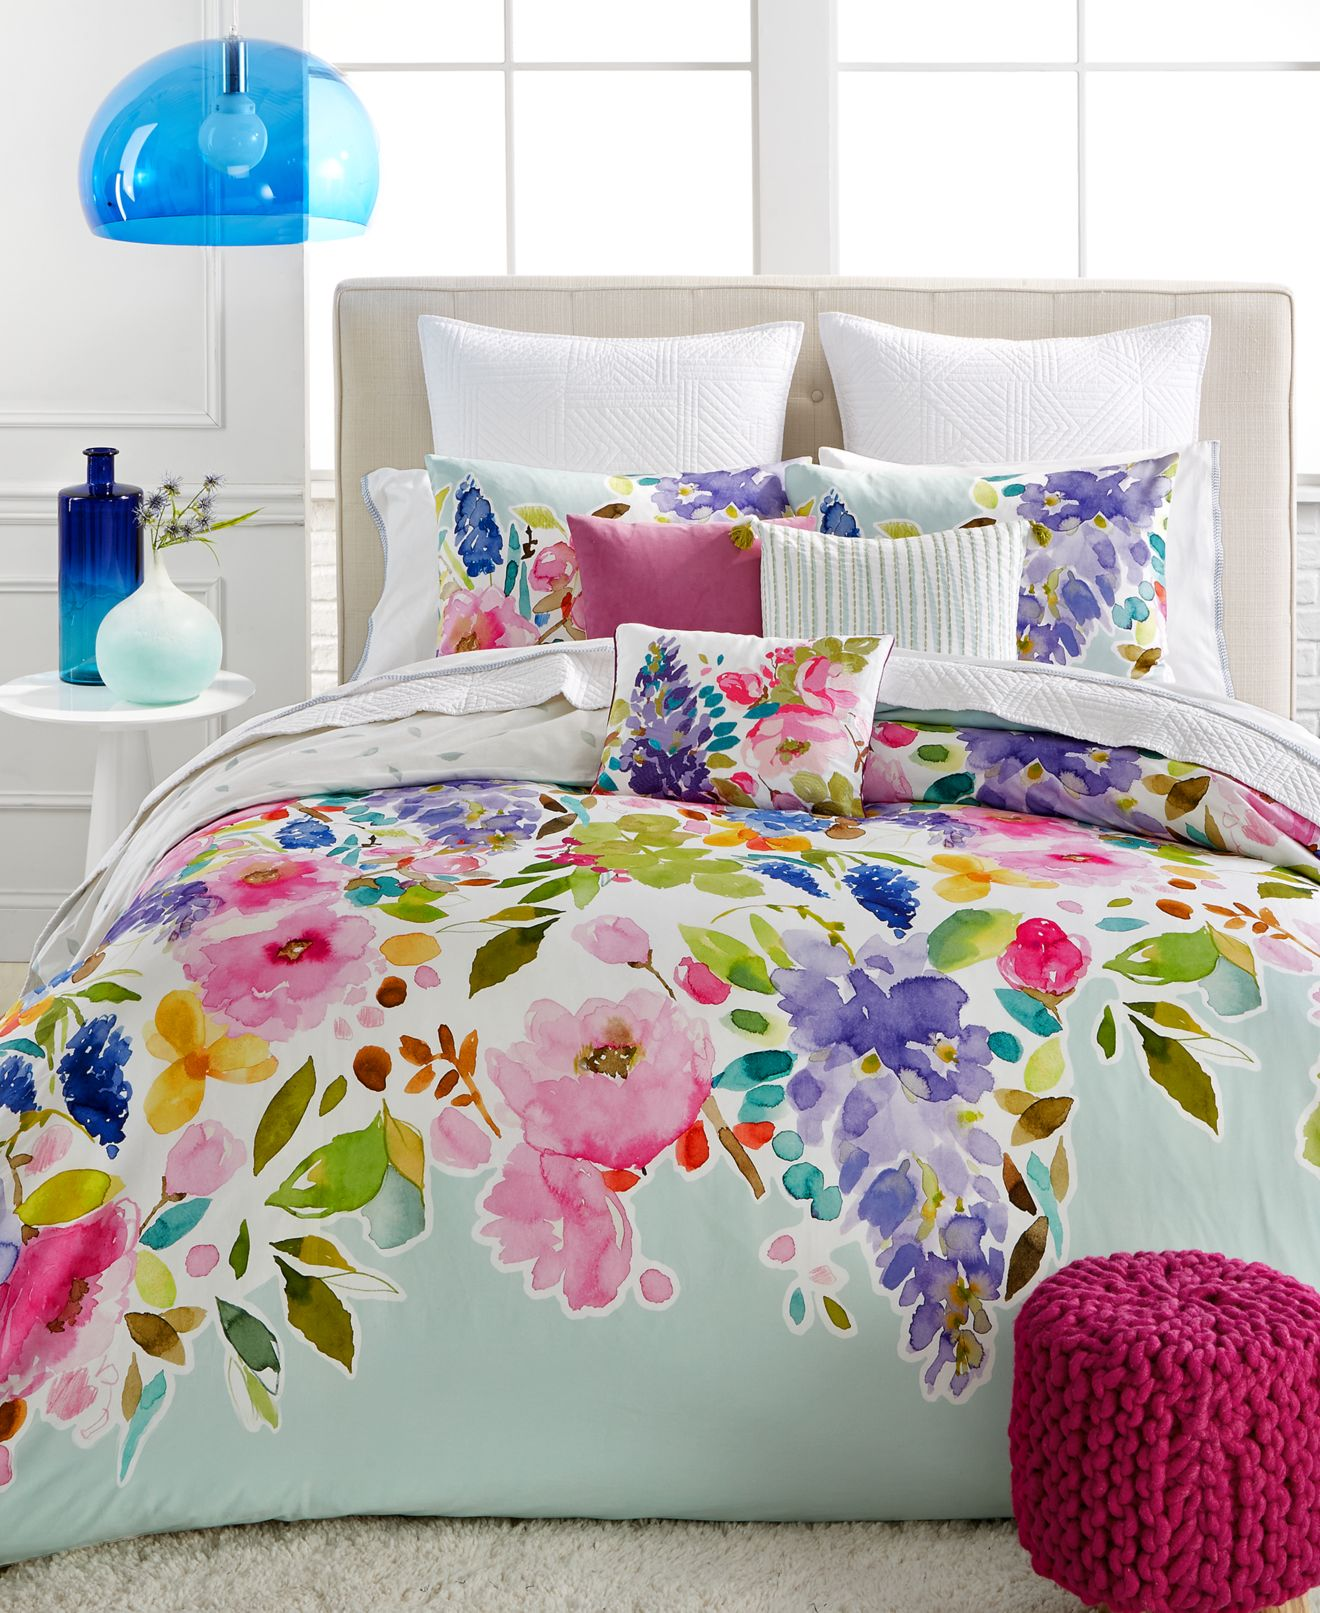 bluebellgray wisteria mint bedding collection, 100% cotton, a